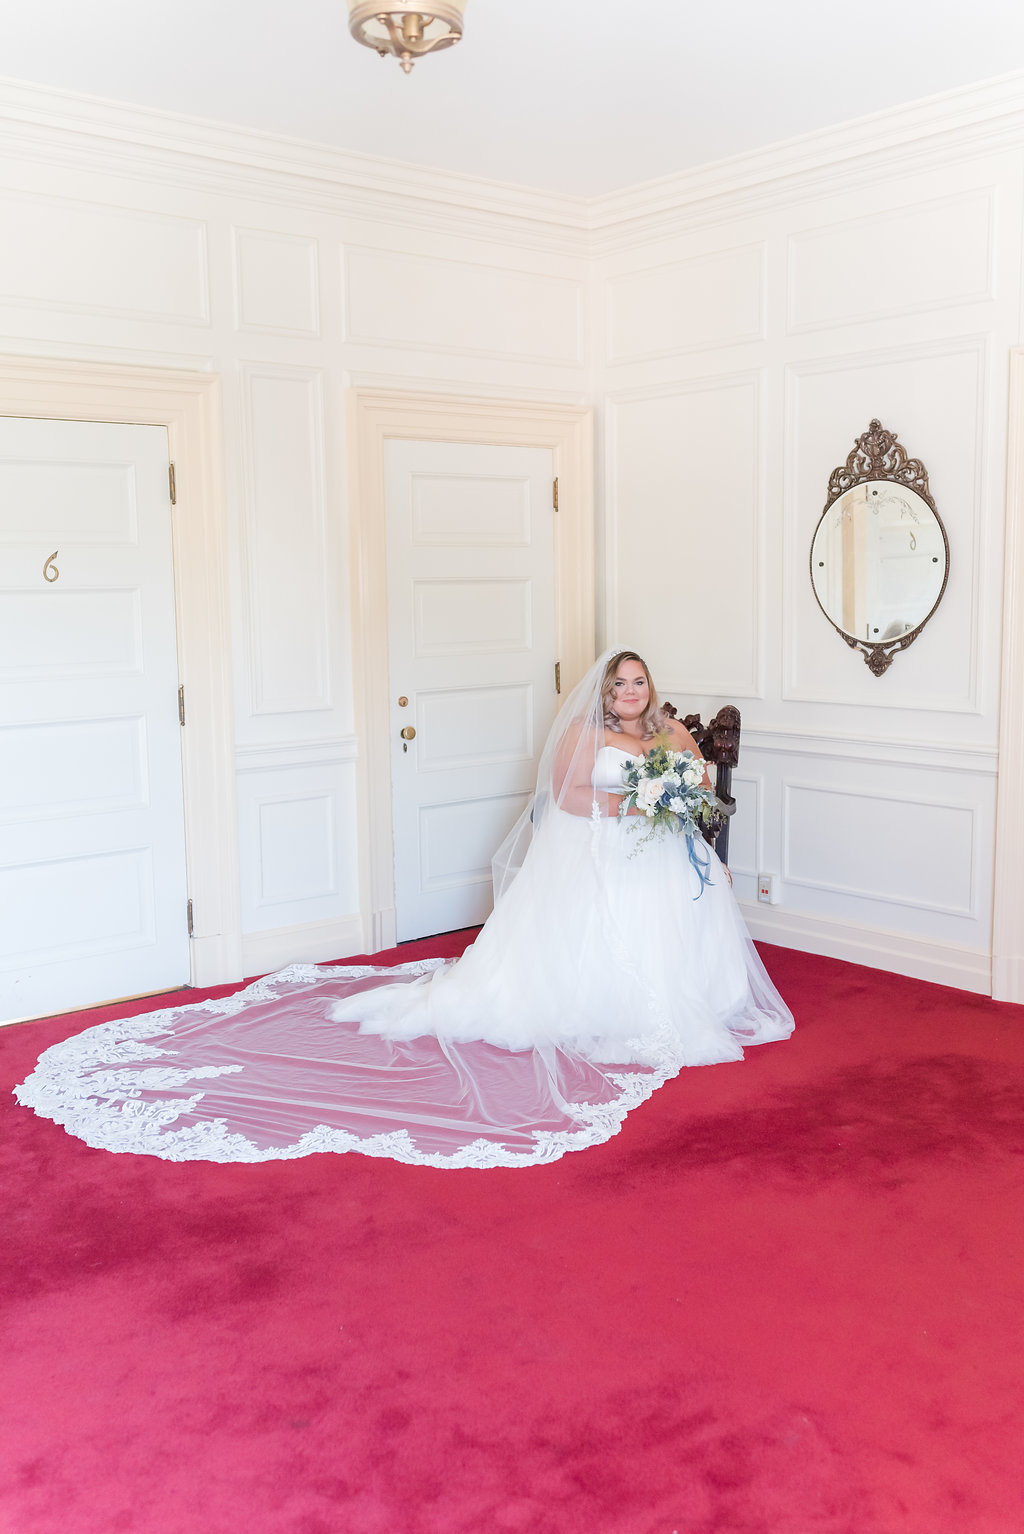 Tool Ball Gown with Cathedral Veil Chicago Wedding Rakoteet Photography